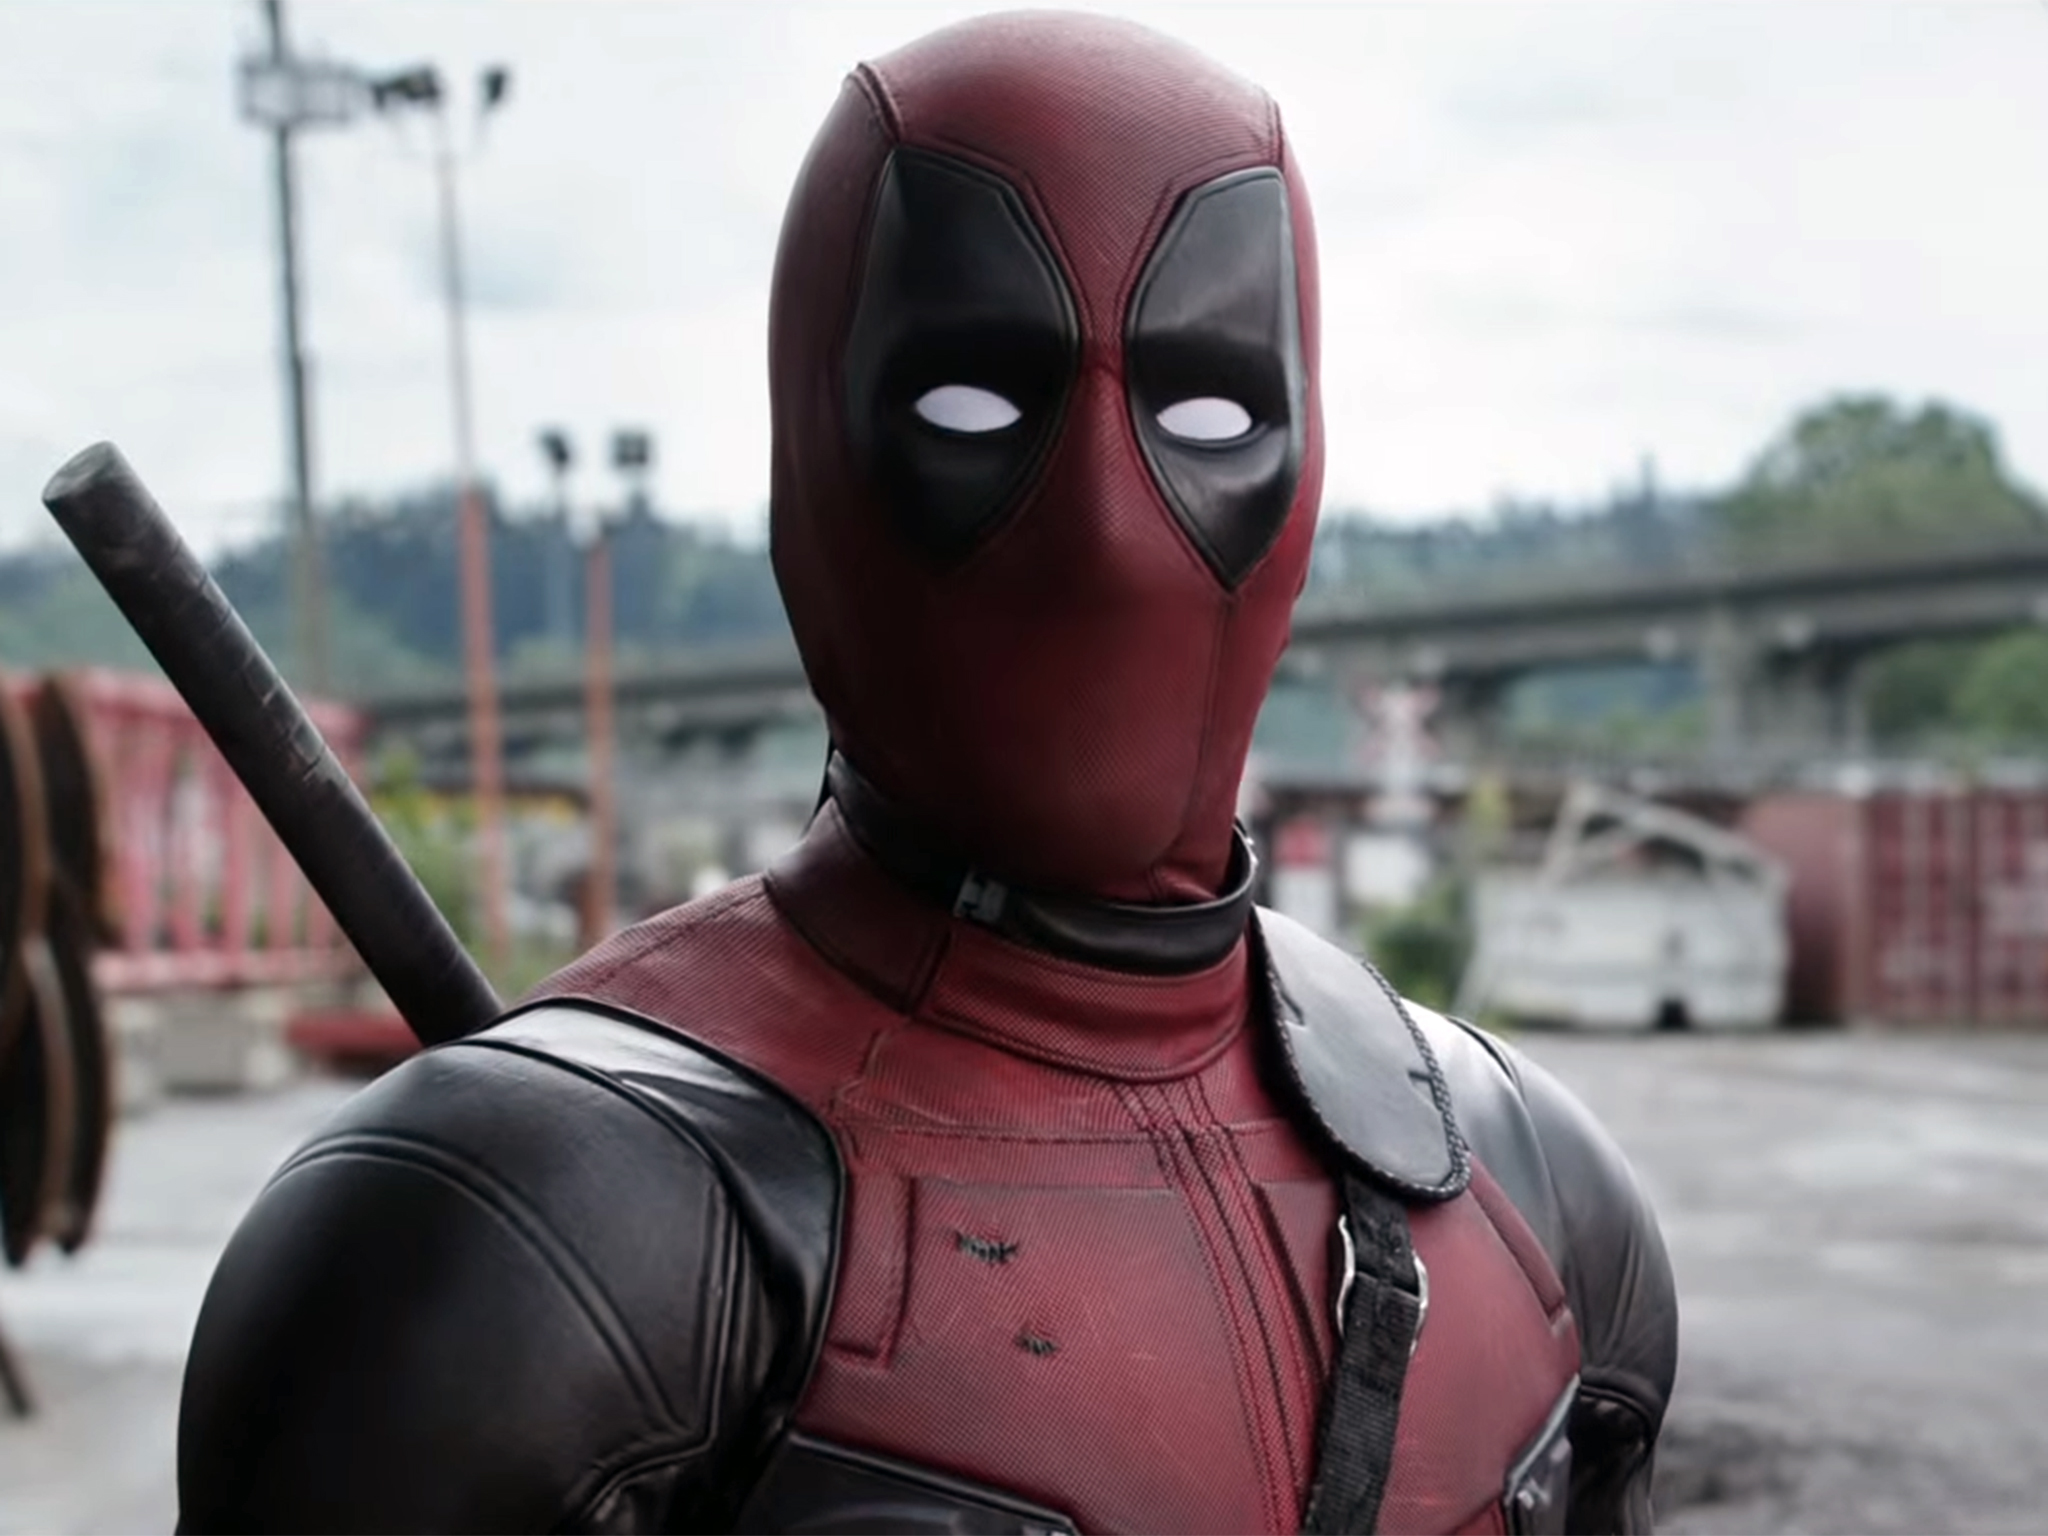 Our personal favorite movie of 2016 (so far at least) is Deadpool and sits in 4th place after 5 months.